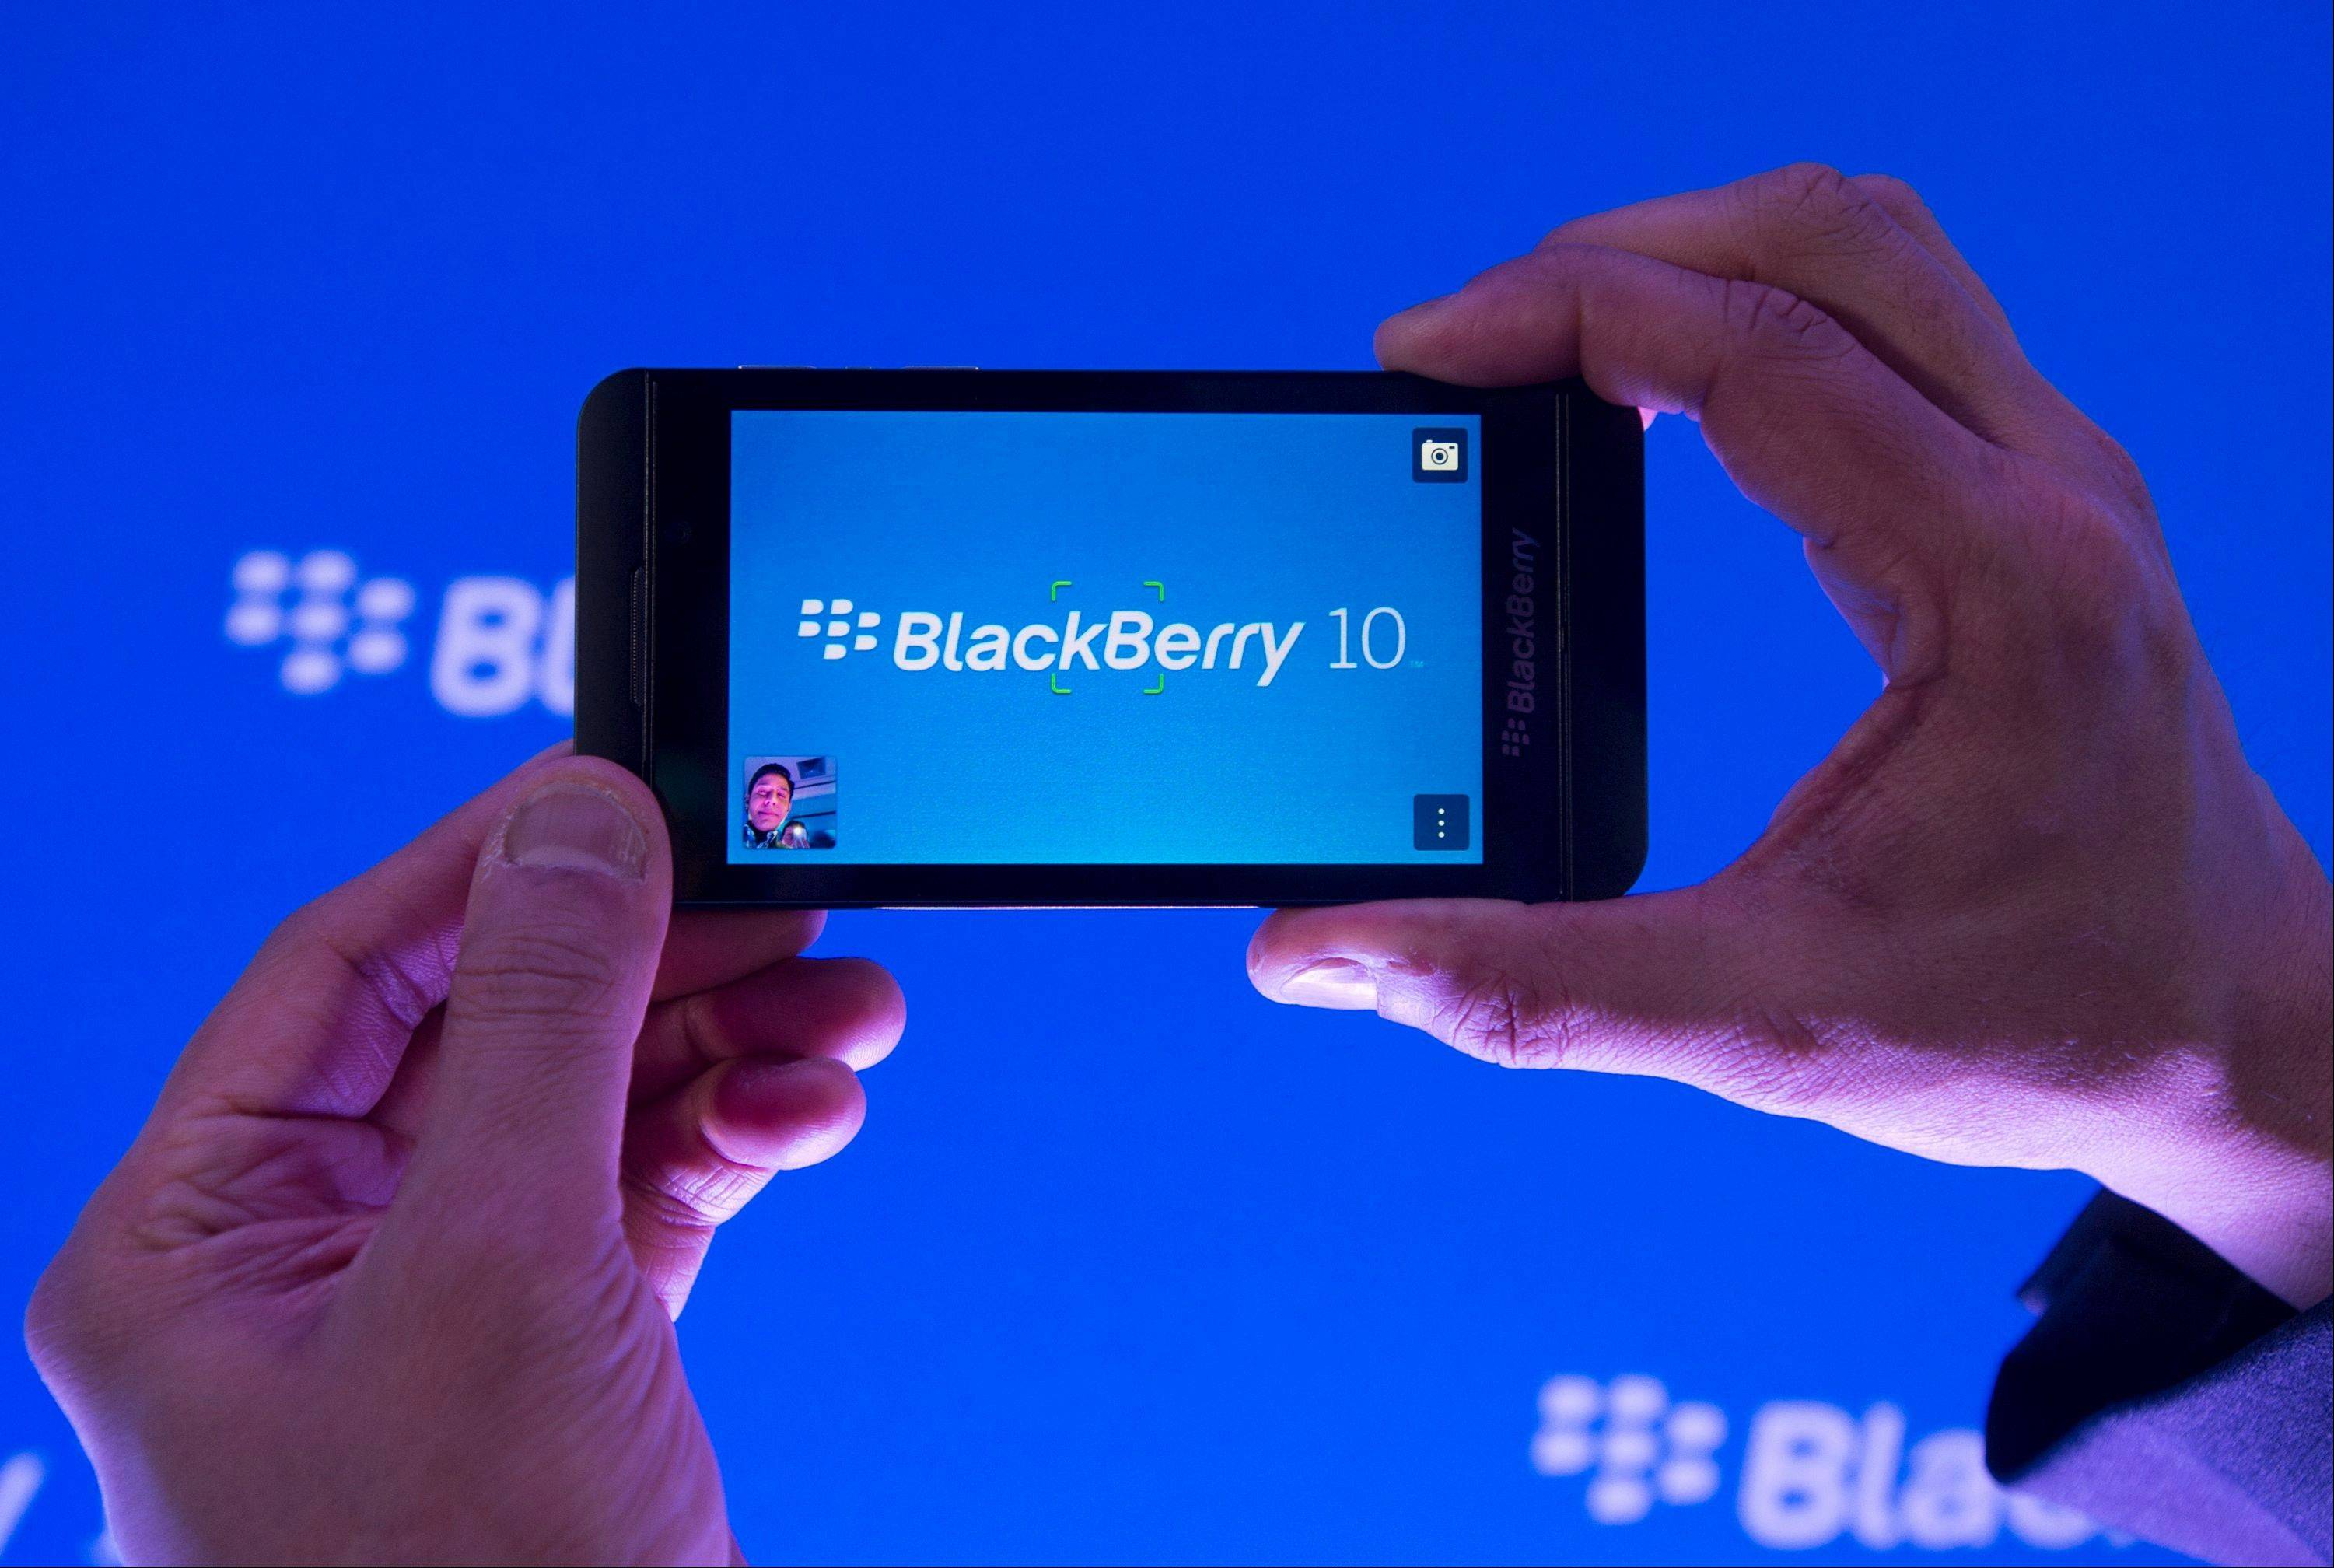 Arun Kumar, a senior product manager for BlackBerry, shows off the new BlackBerry Z10 Wednesday during the global launch of the new Blackberry smartphones in Toronto. BlackBerry is promising a speedy browser, a superb typing experience and the ability to keep work and personal identities separate on the same phone, the fruit of a crucial, long-overdue makeover for the company.